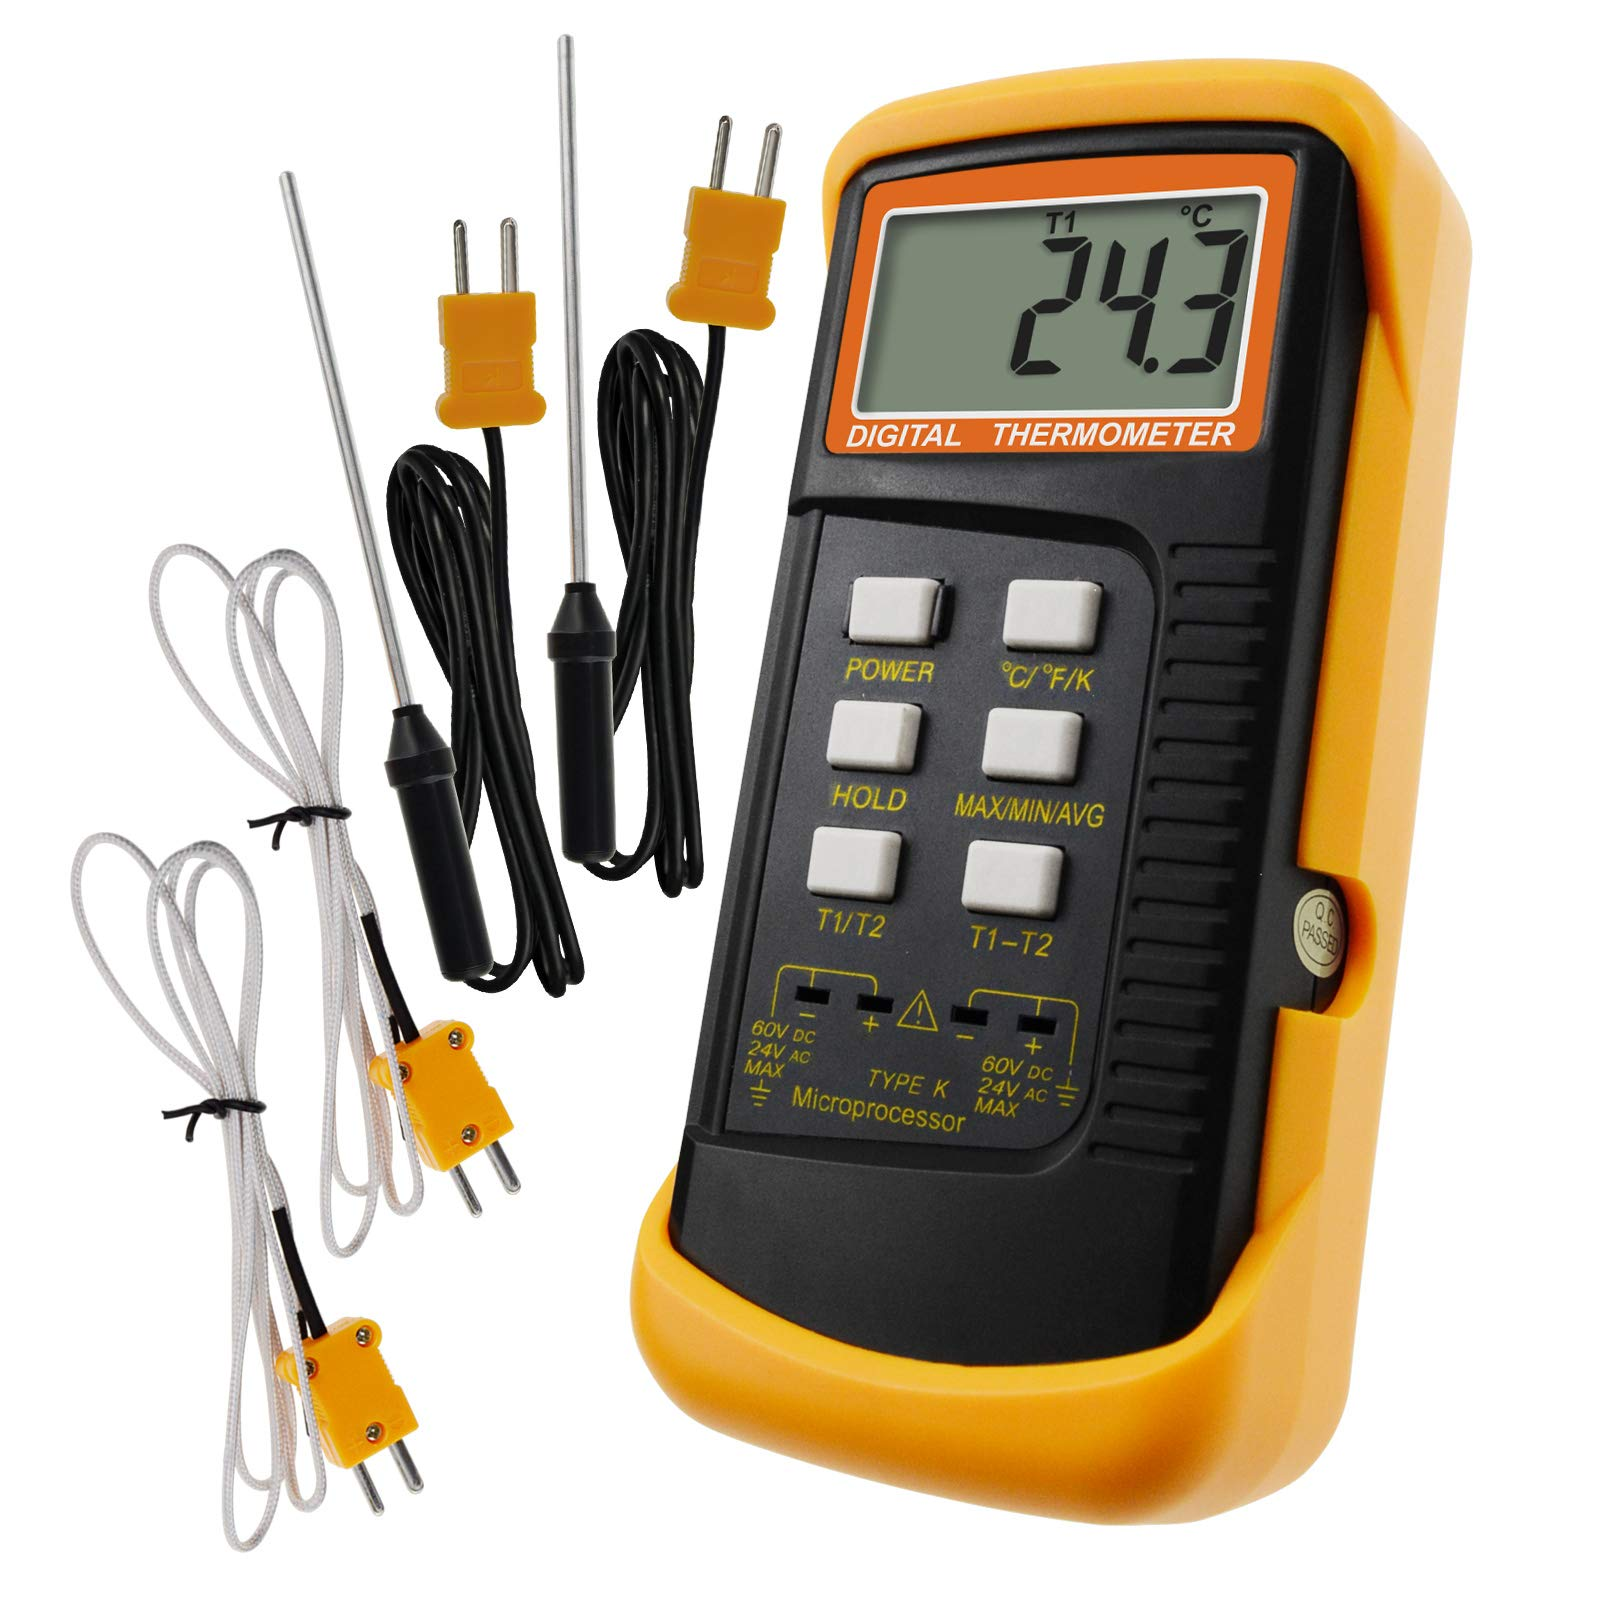 Digital 2 Channels K-Type Thermometer w/ 4 Thermocouples (Wired & Stainless Steel), -50~1300°C (-58~2372°F) Handheld Desktop High Temperature Kelvin Scale Dual Measurement Meter Sensor